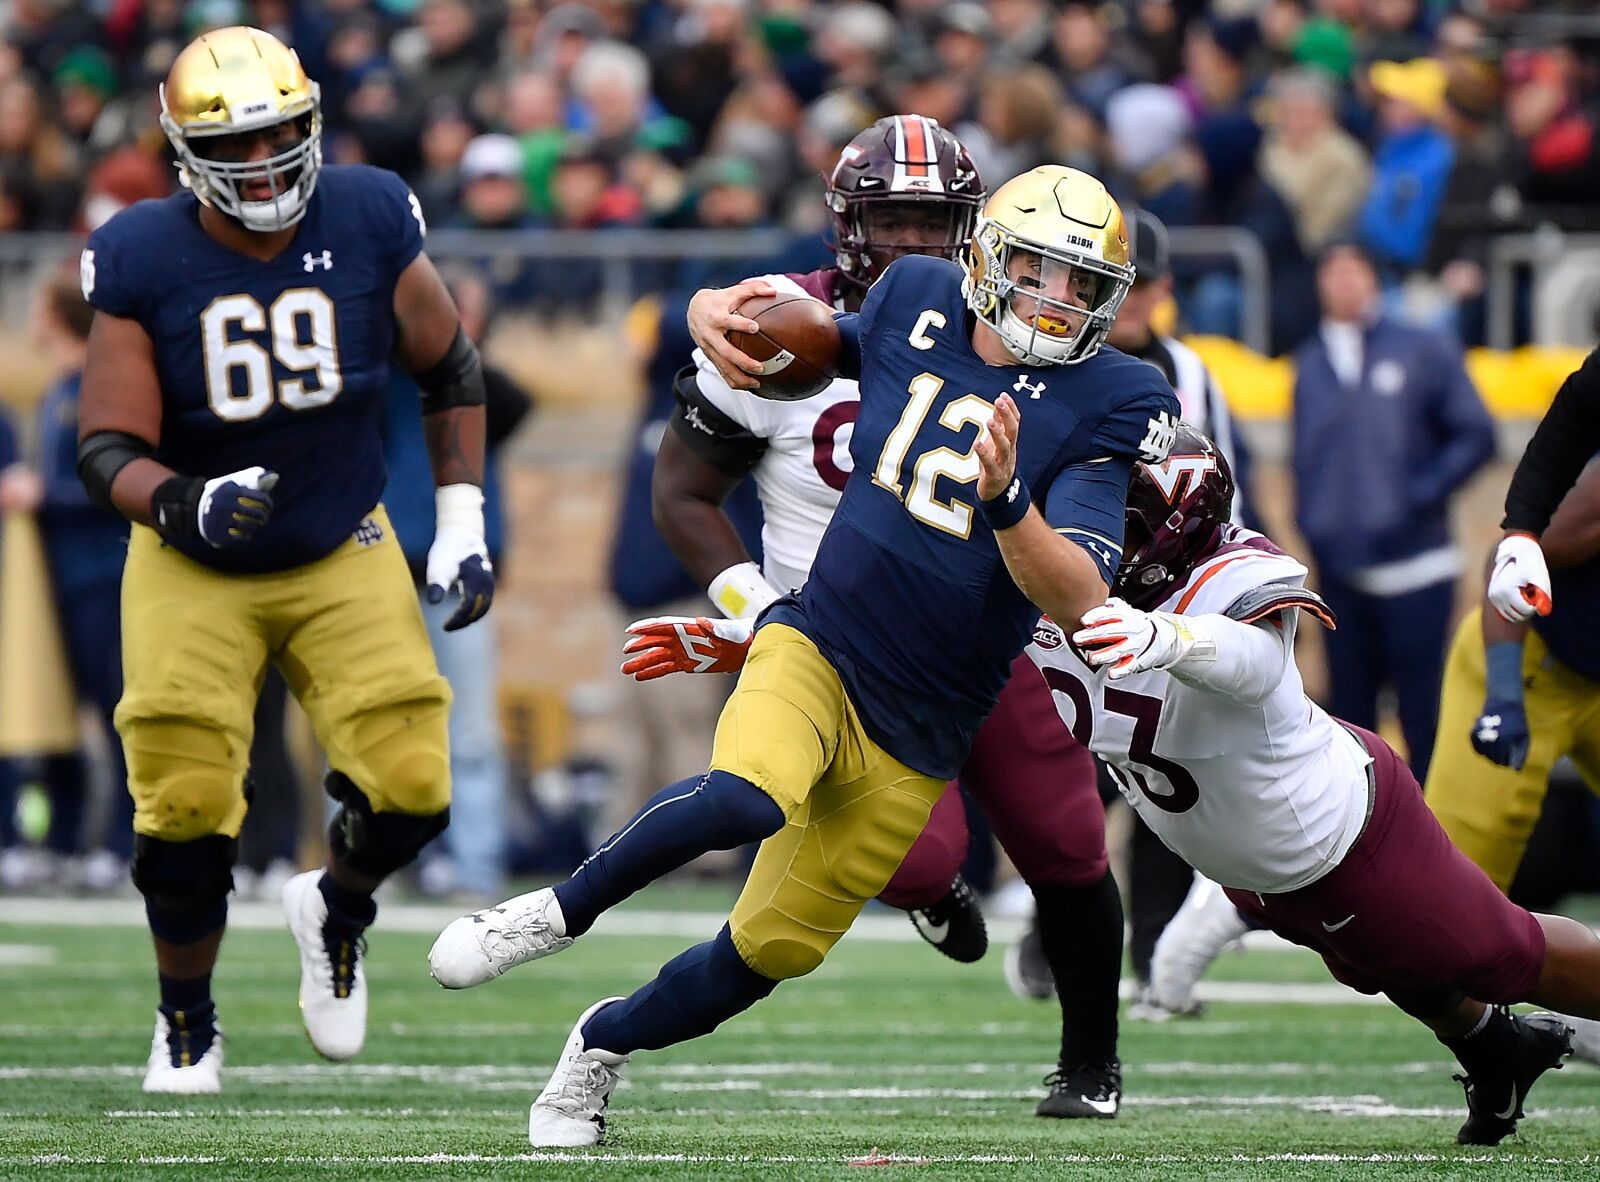 Notre Dame Football: Ian Book is becoming a legit dual-threat